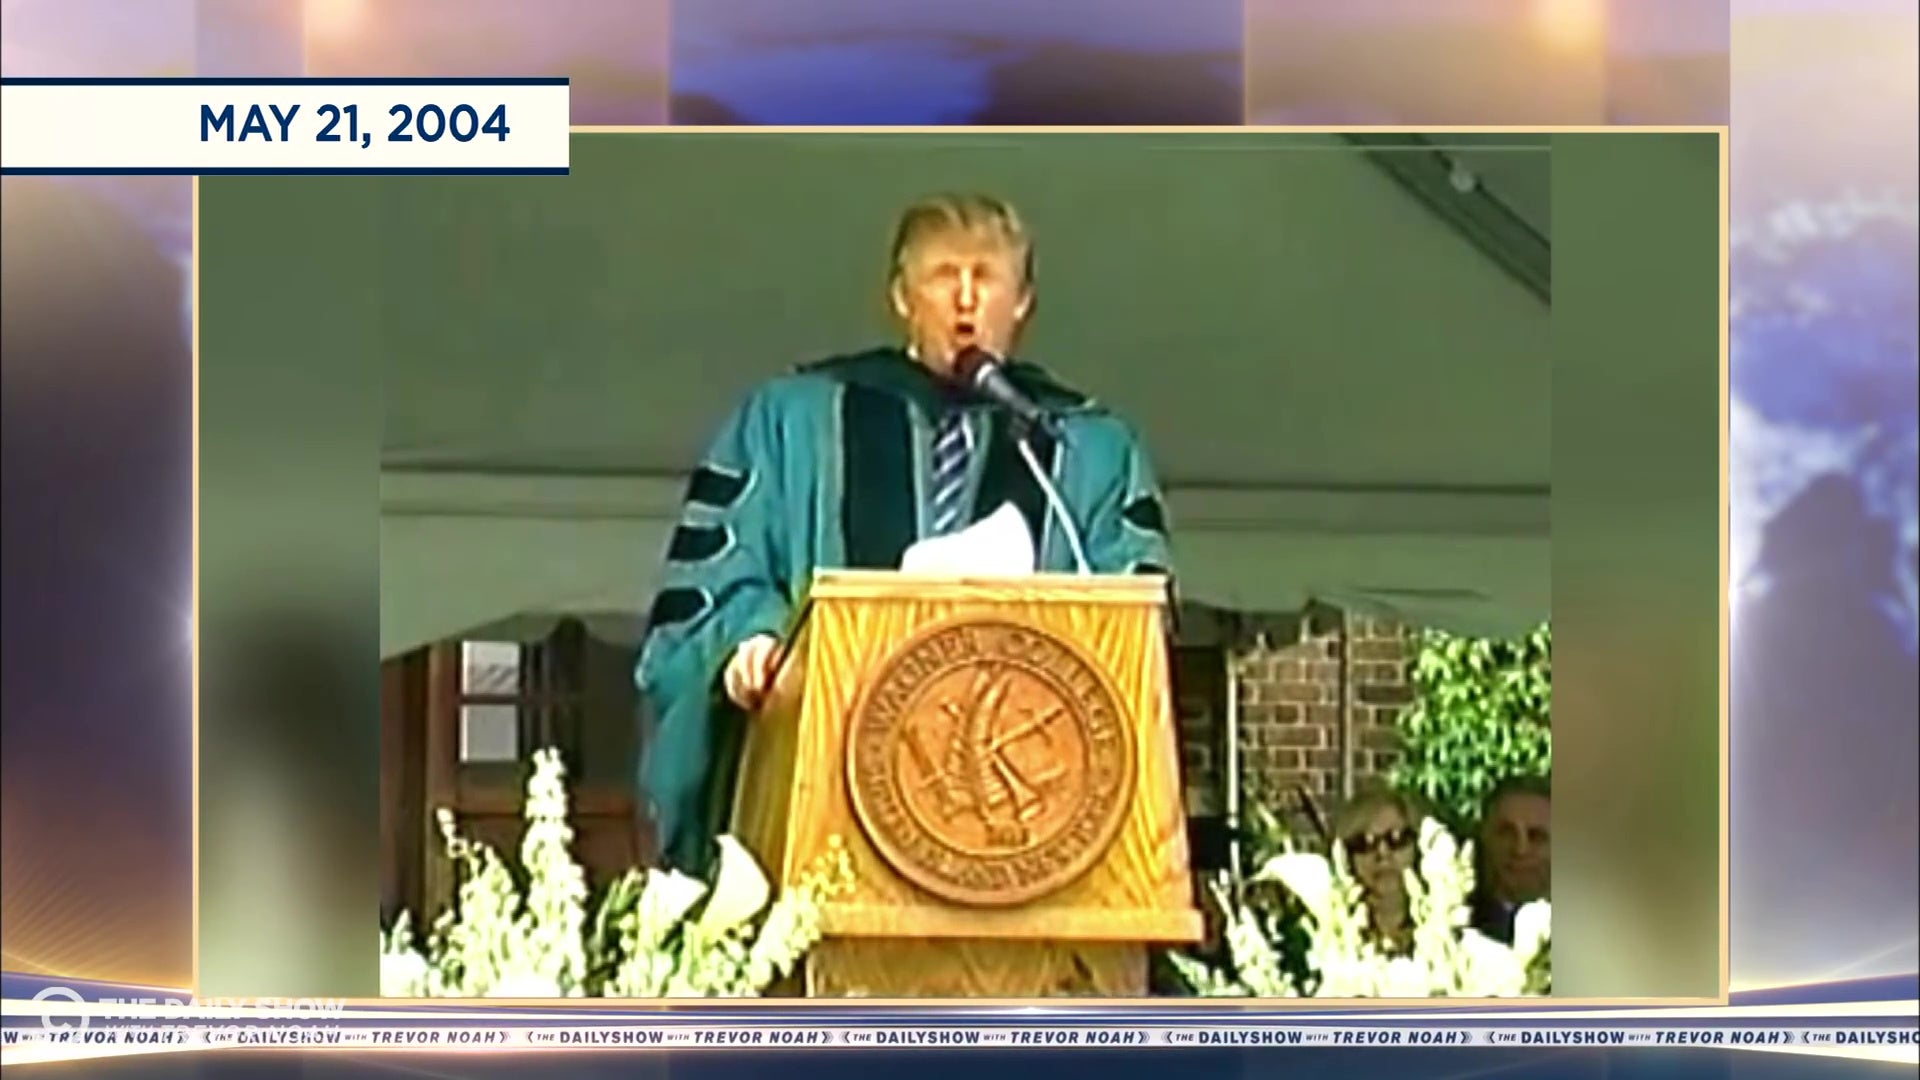 President Trump giving a commencement address.